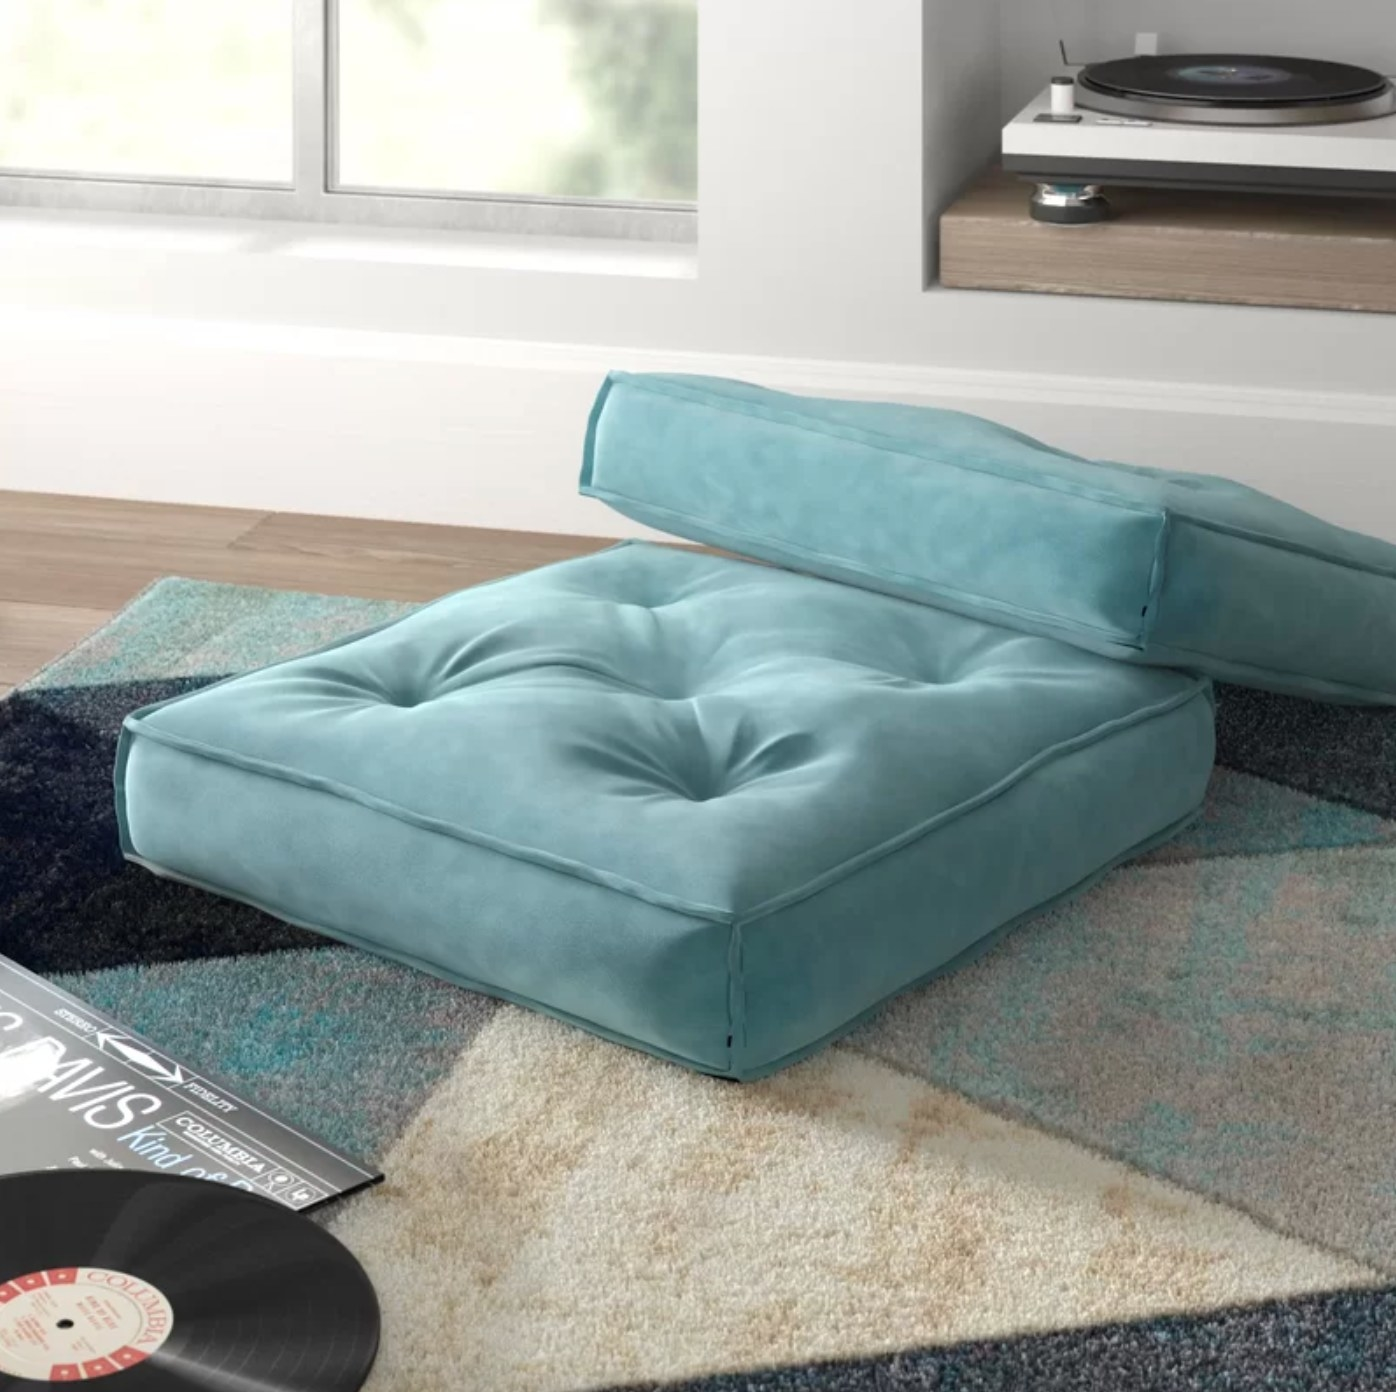 The square pillow cover and insert in teal